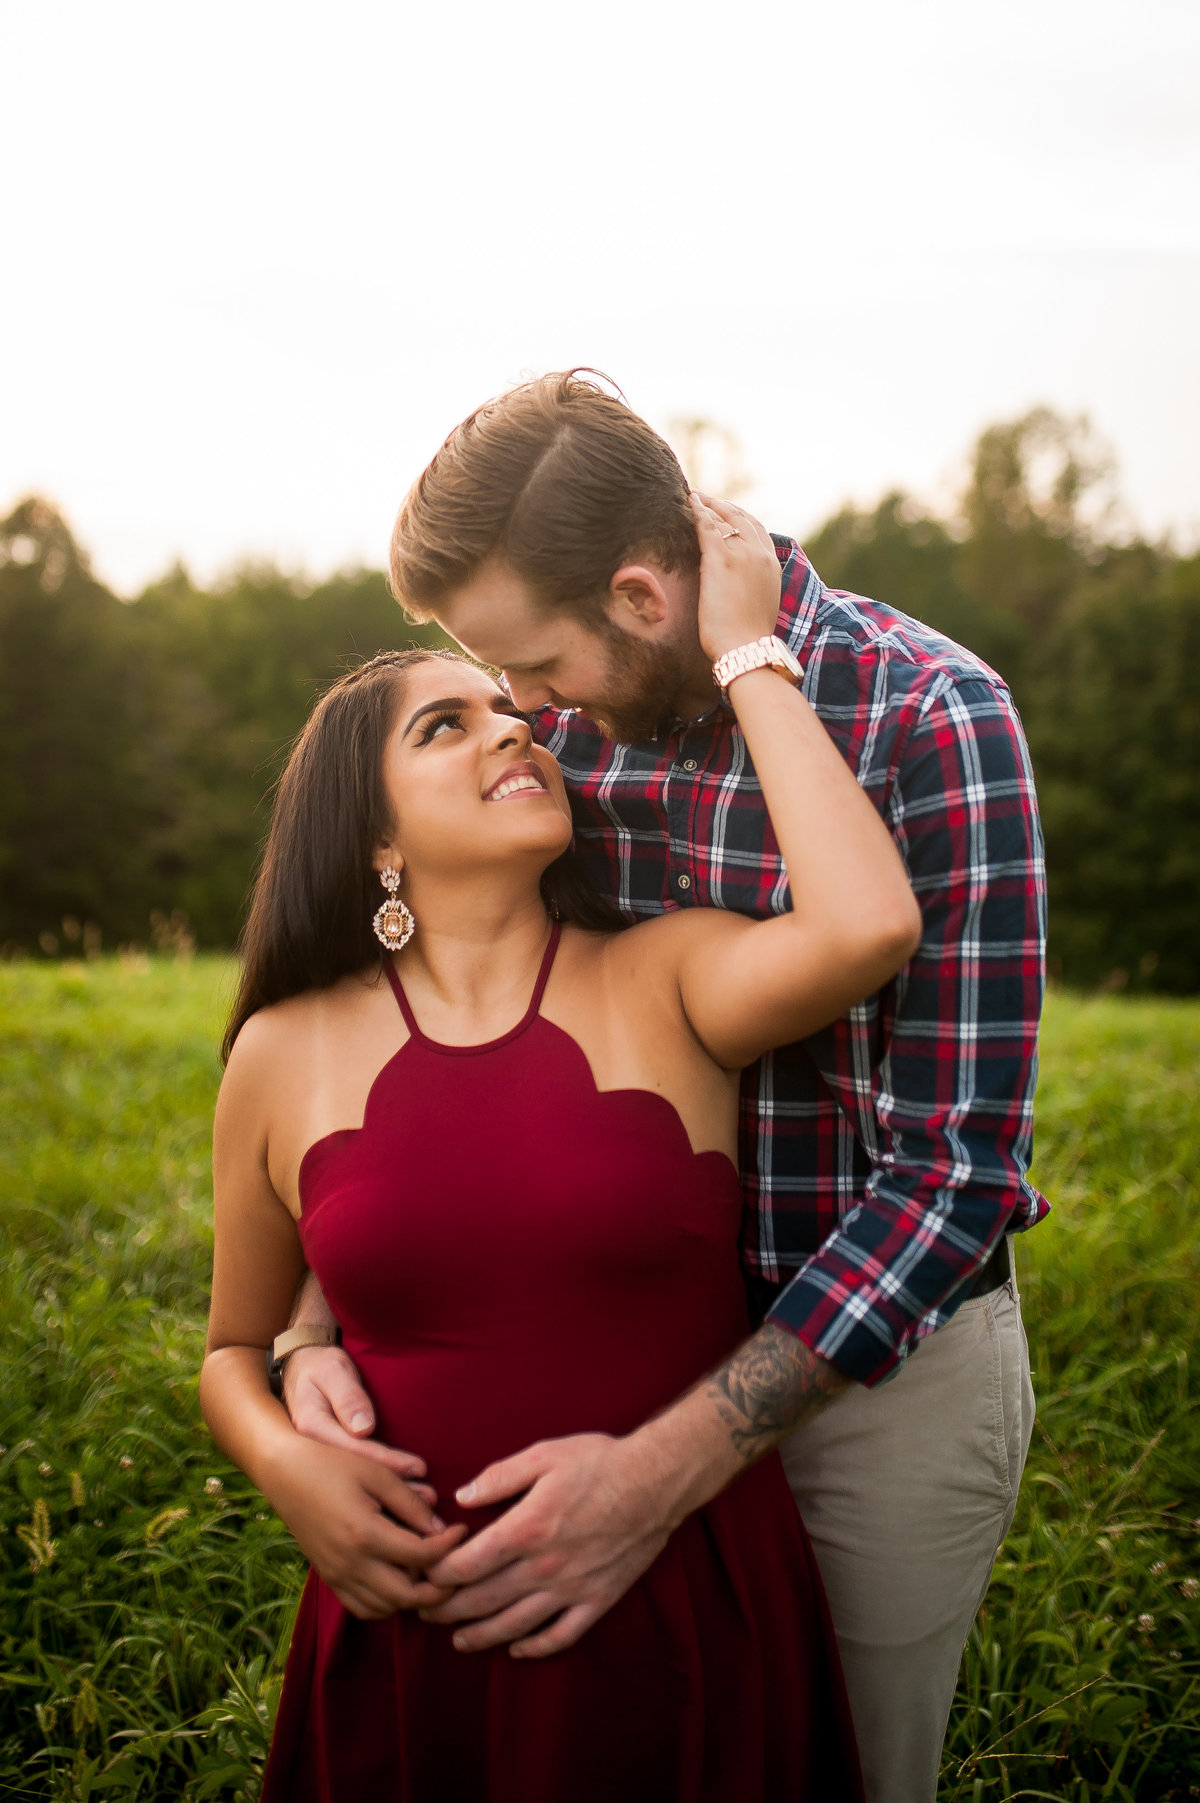 mirna+alex_engaged_jtp2018-88